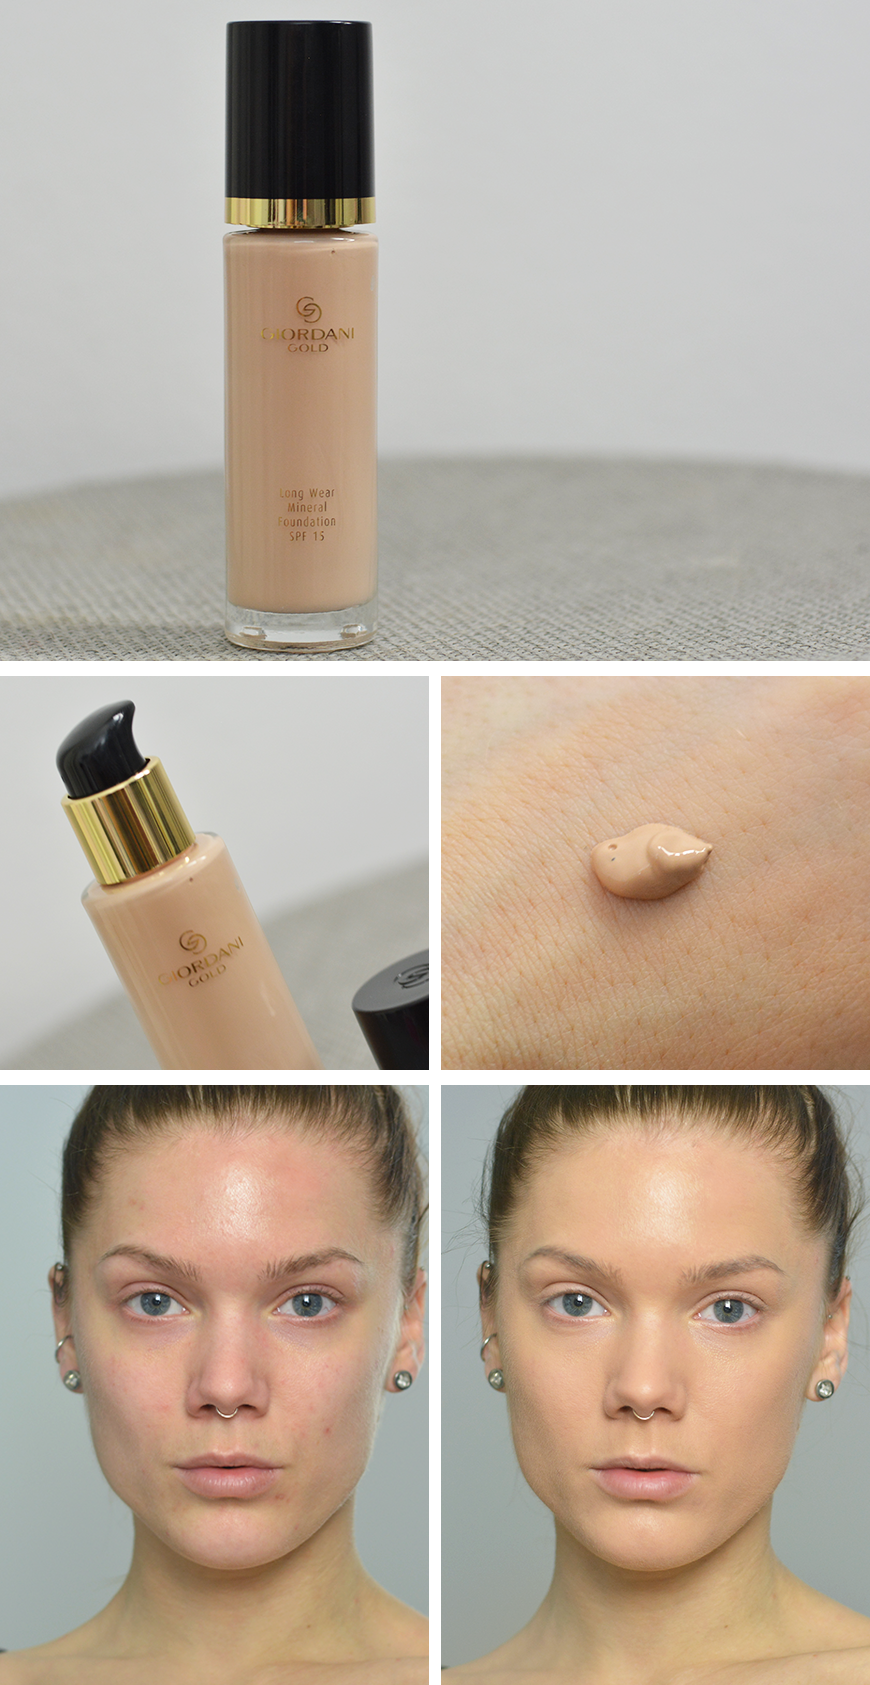 giordanigold long wear mineral foundation spf 15 light rose